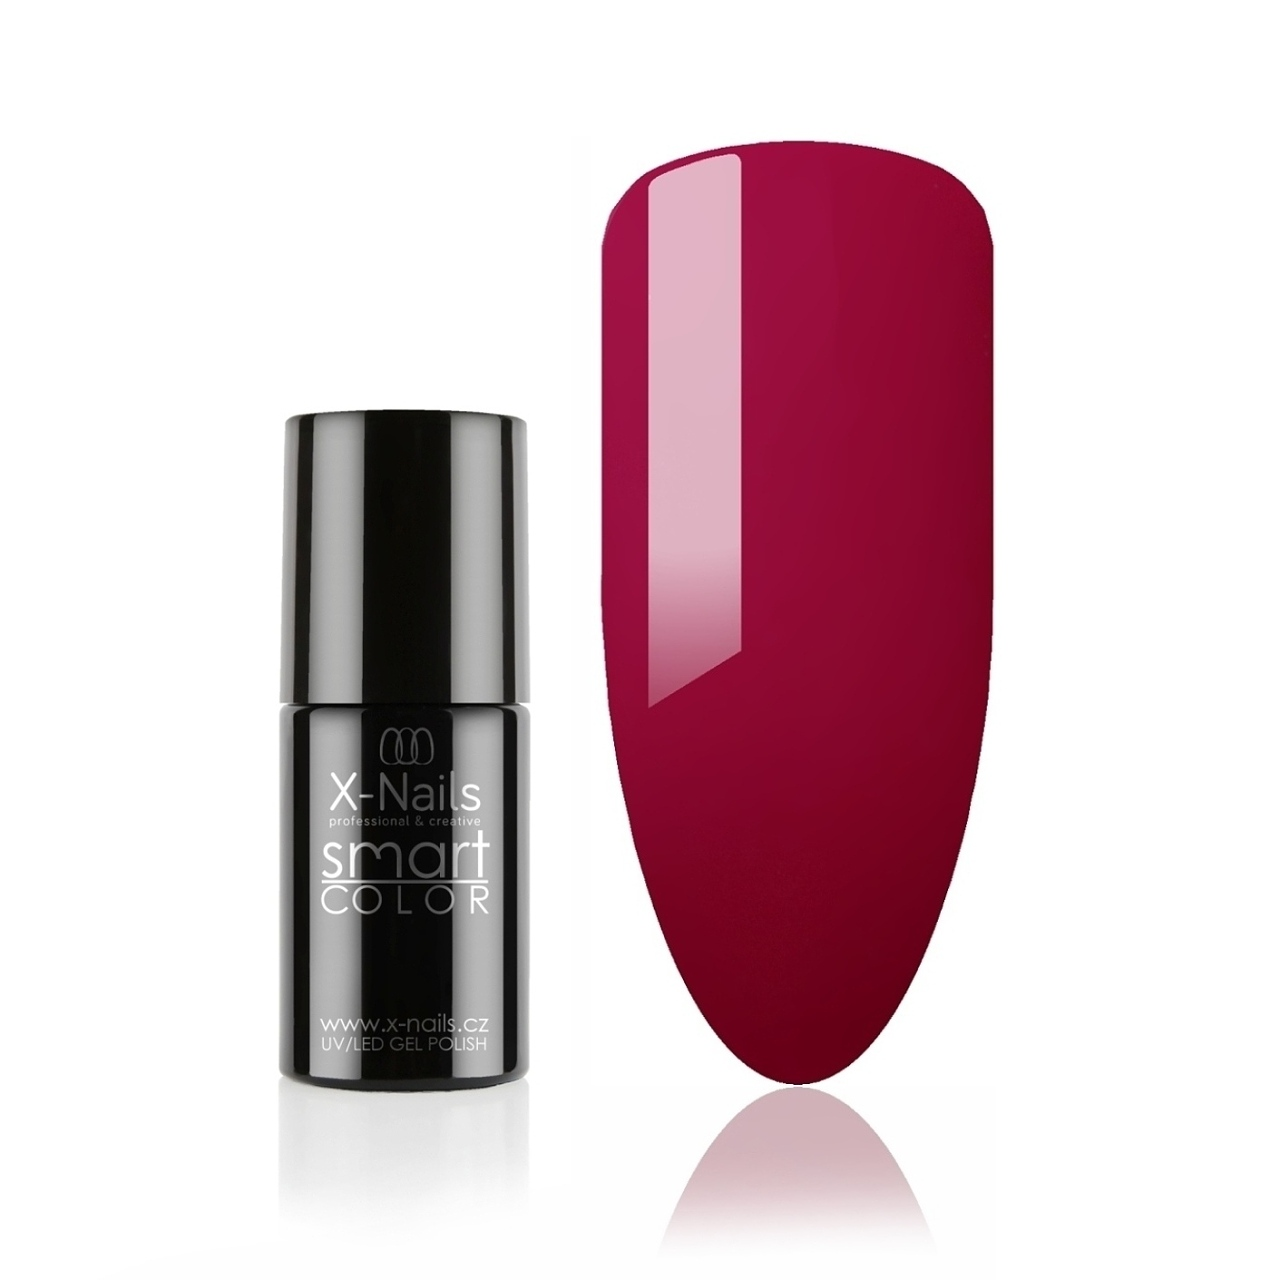 Bezvýpotkový no wipe gel lak Smart Line, 5ml - DEEP CERISE